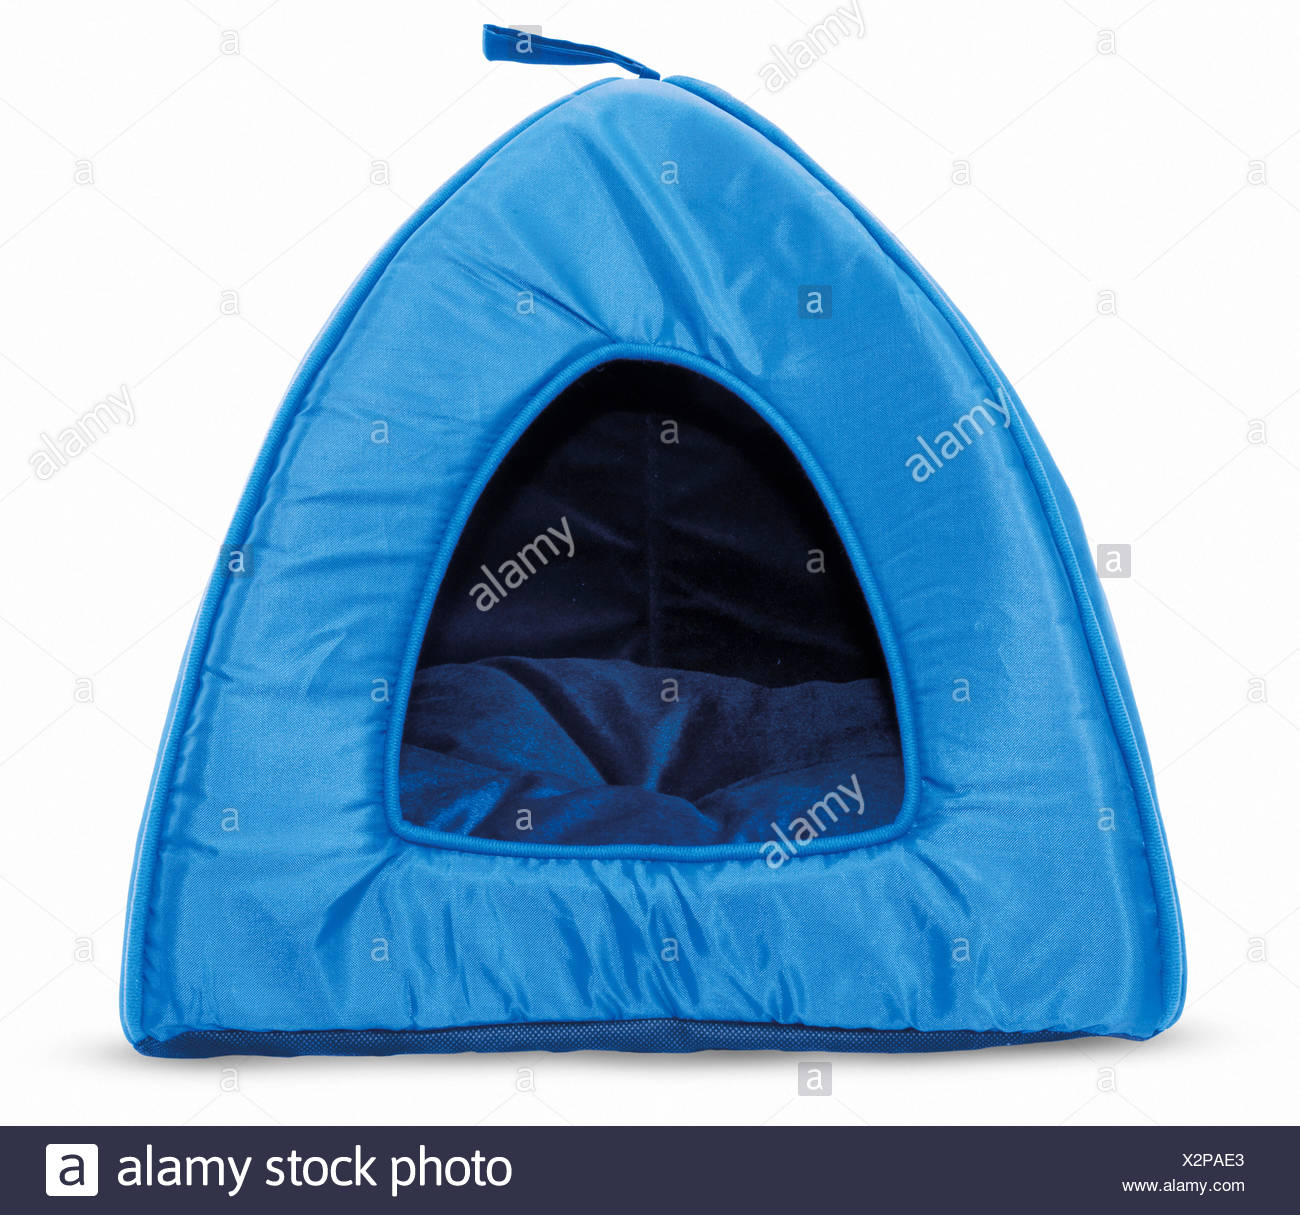 Tent-style cat bed - Stock Image